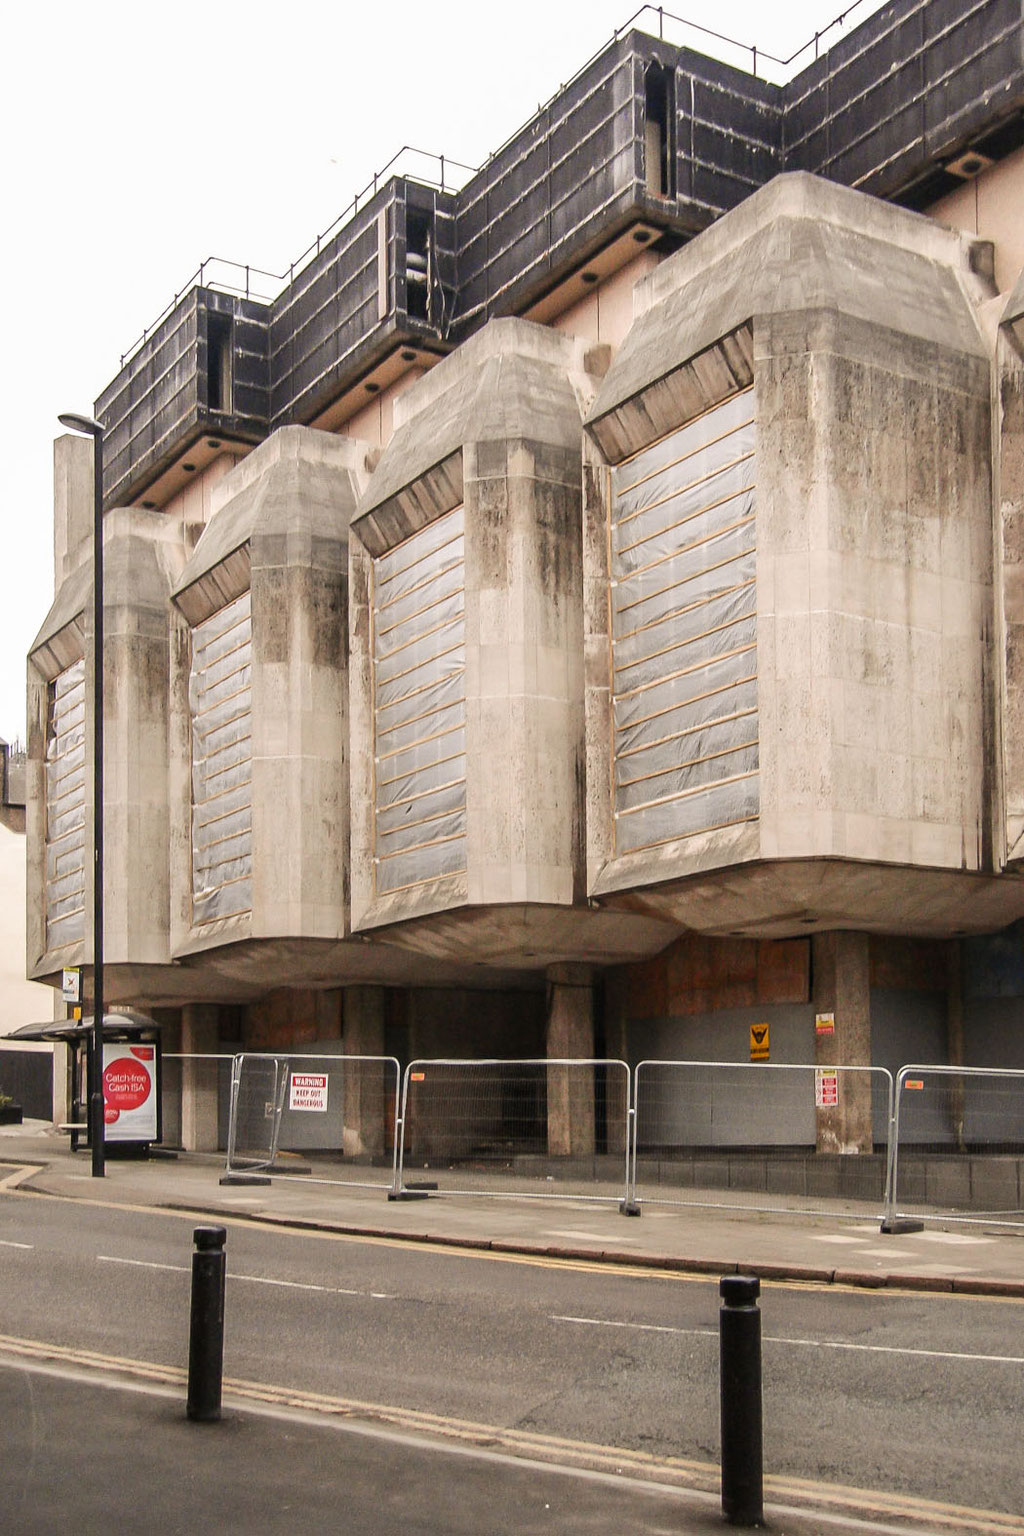 Bank Of England (Sir Basil Spence, Fitzroy, Robinson & Partners), abgerissen/demolished 2012, Newcastle upon Tyne (UK)